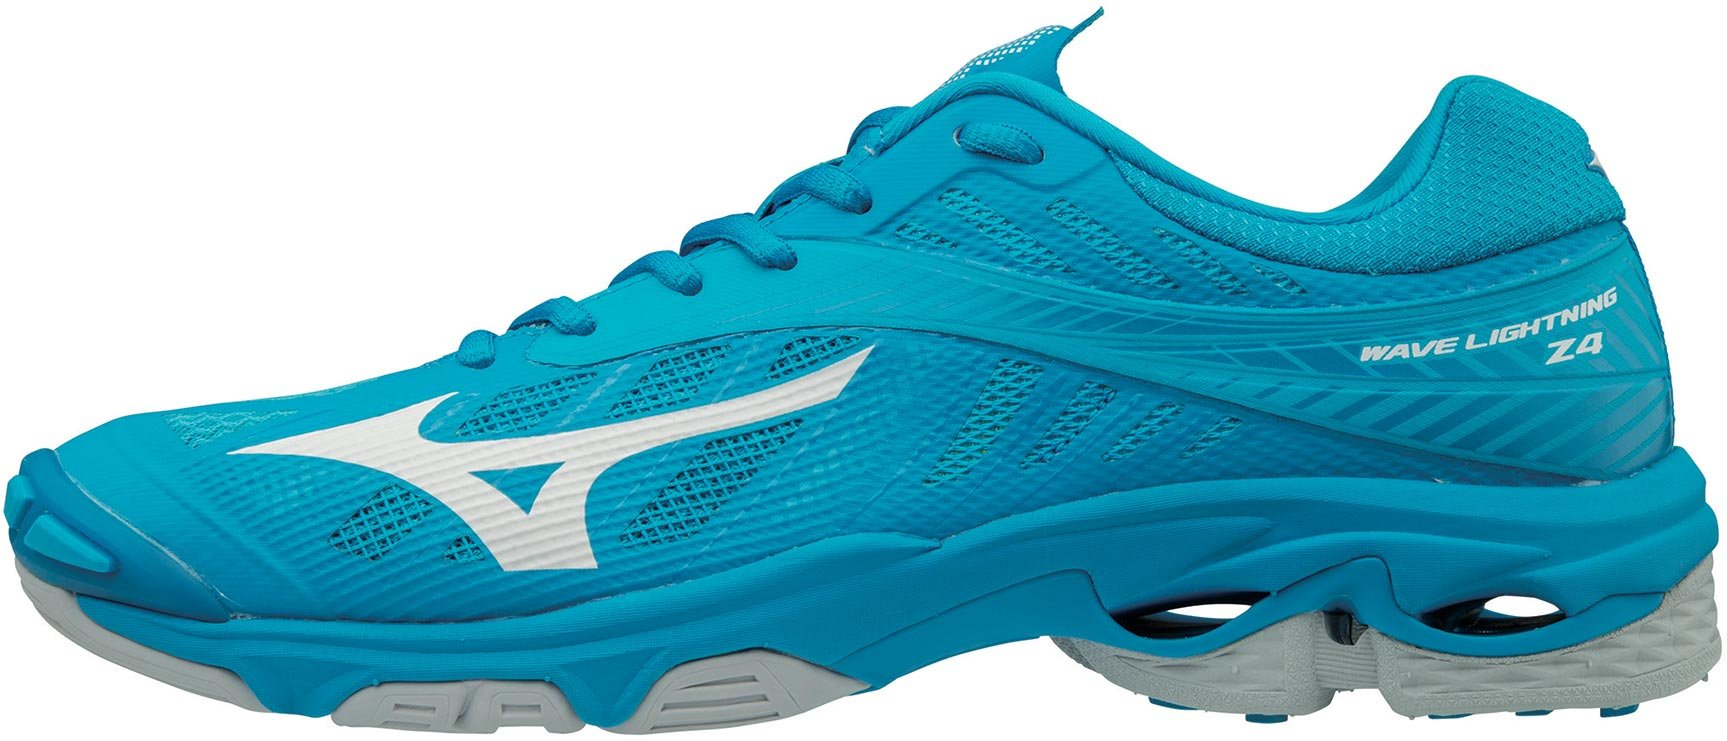 974c84db4d8 Mizuno Wave Lightning Z4 50